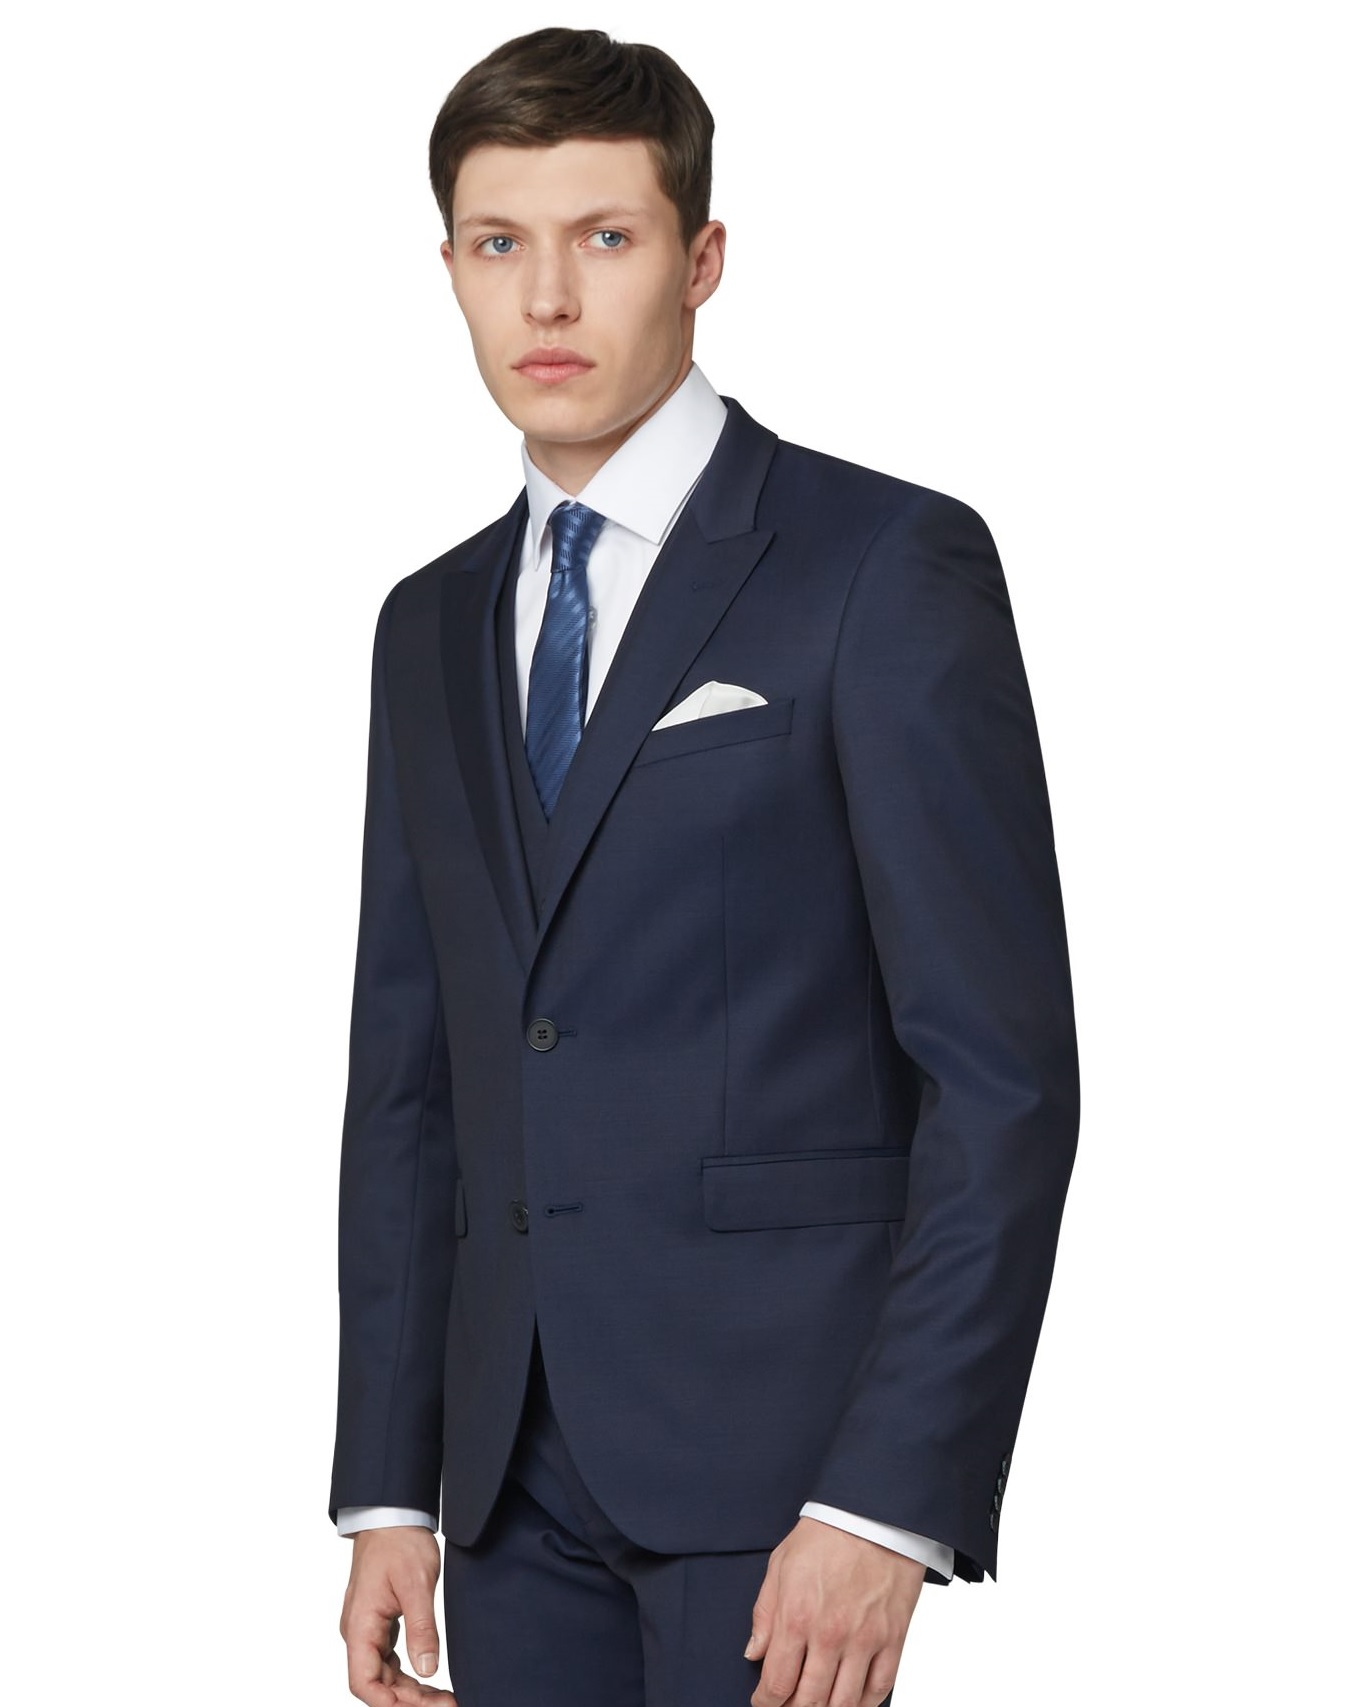 DKNY Mens Ink Blue Twill Suit Jacket Slim Fit Single Breasted Two ...